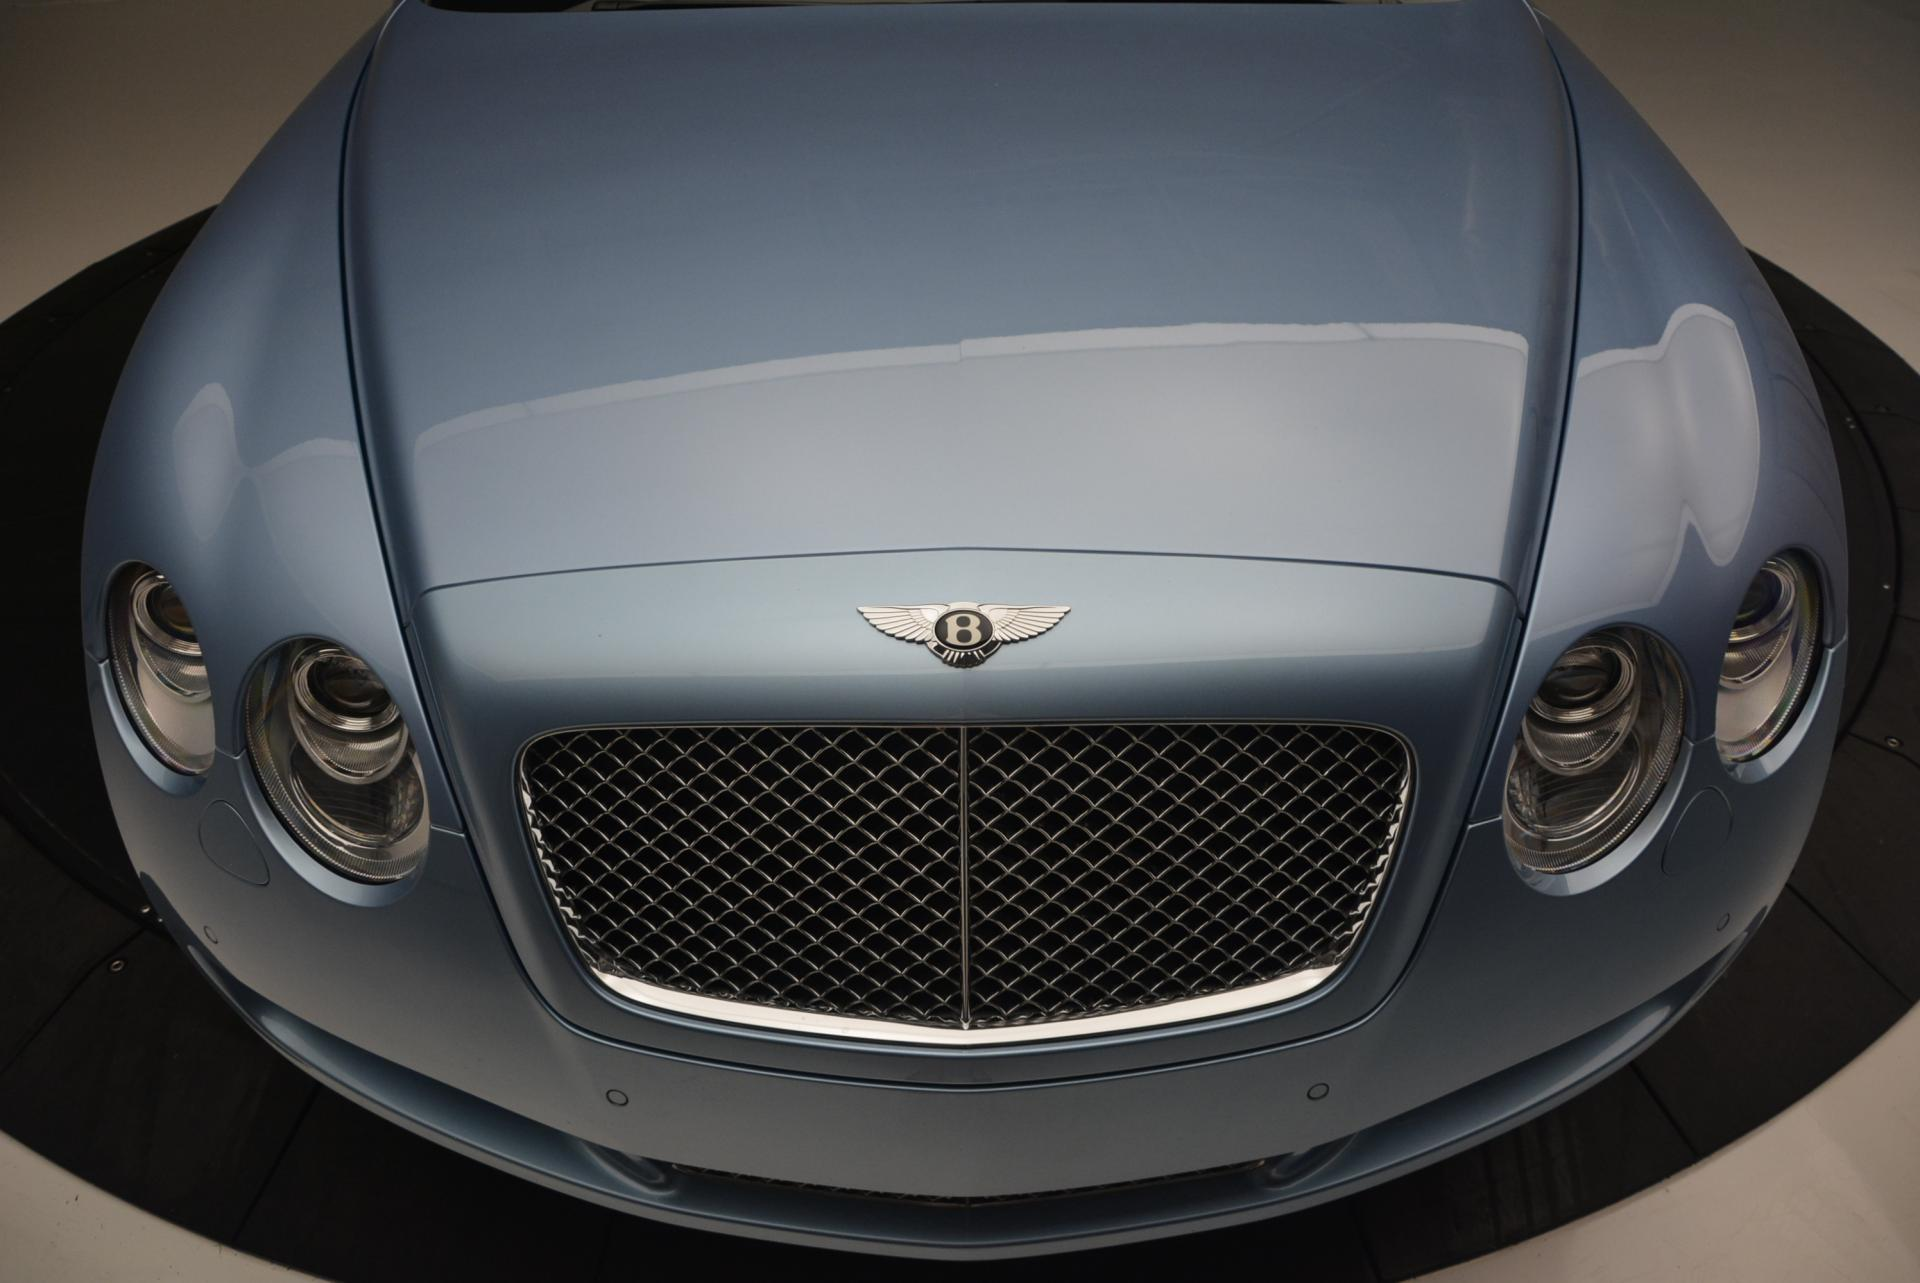 Used 2007 Bentley Continental GTC  For Sale In Westport, CT 495_p24